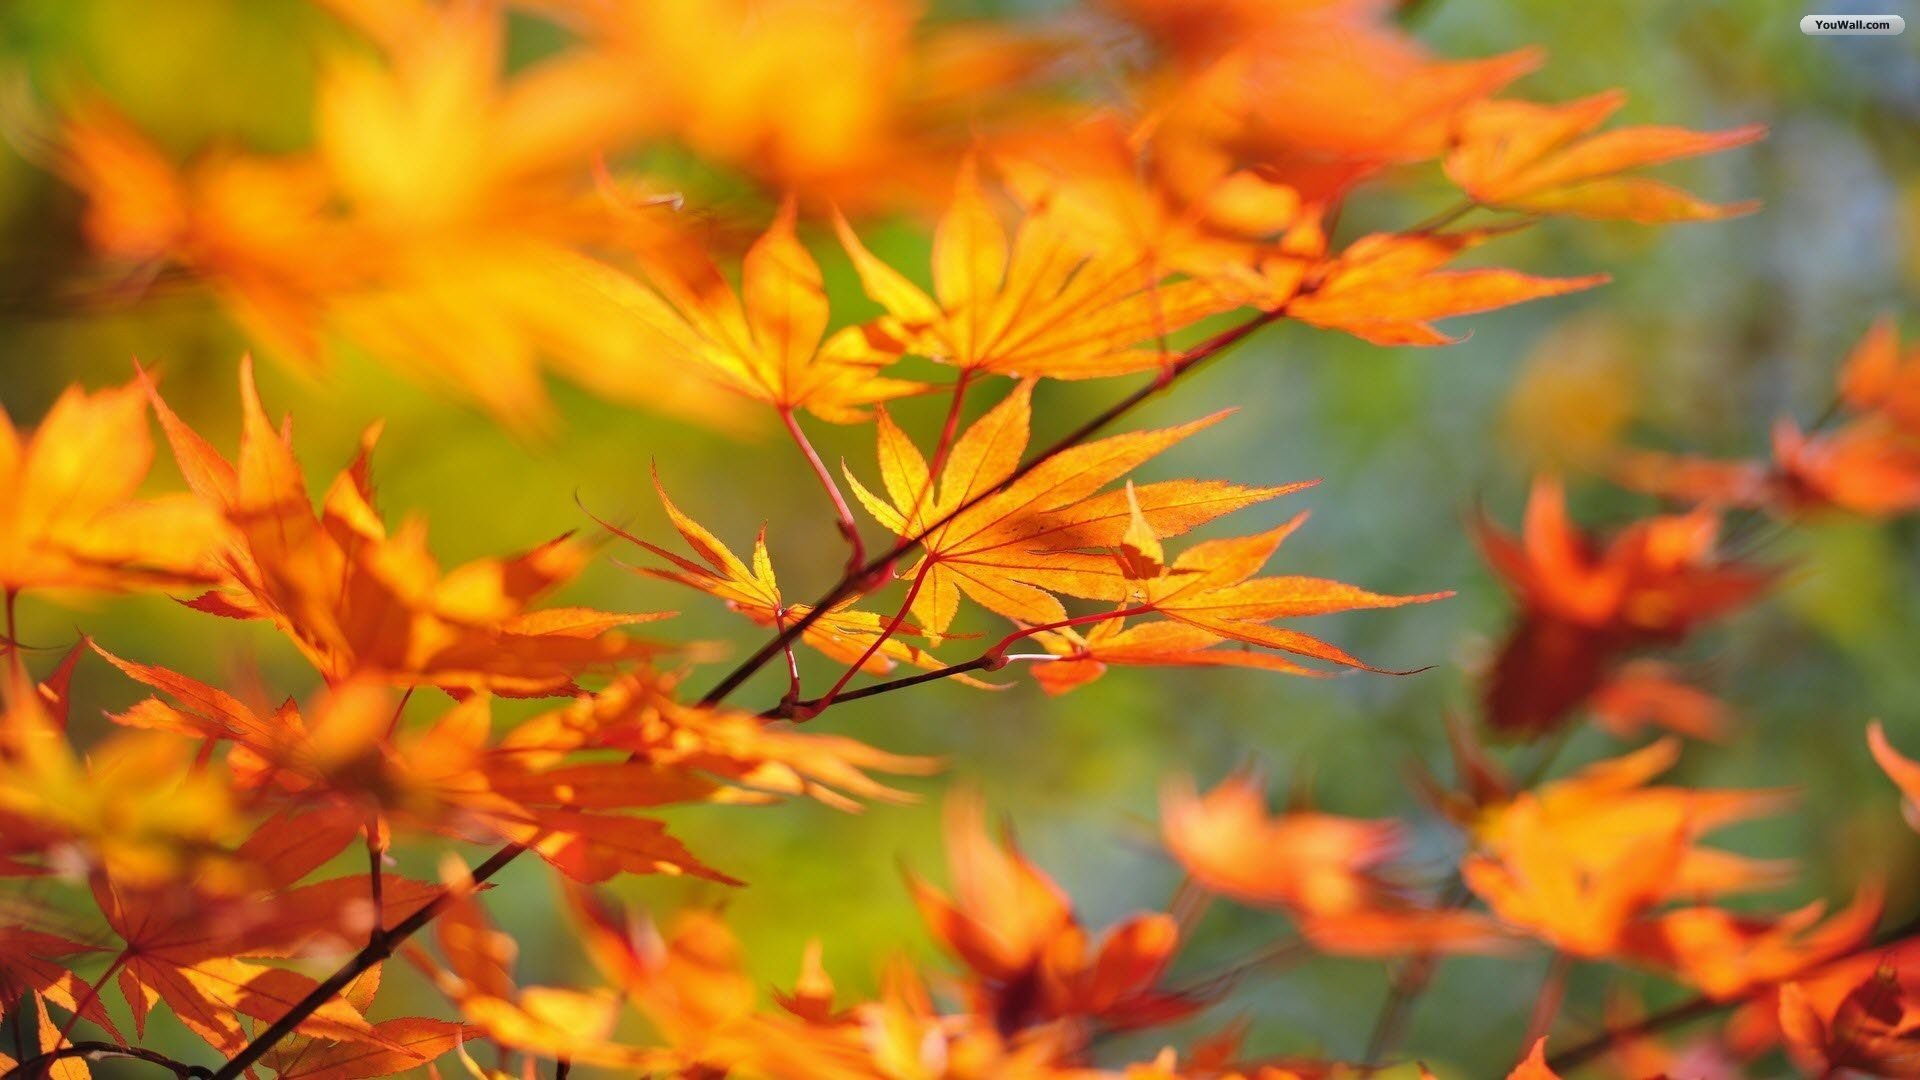 Fall Leaves Wallpapers (72+ images)